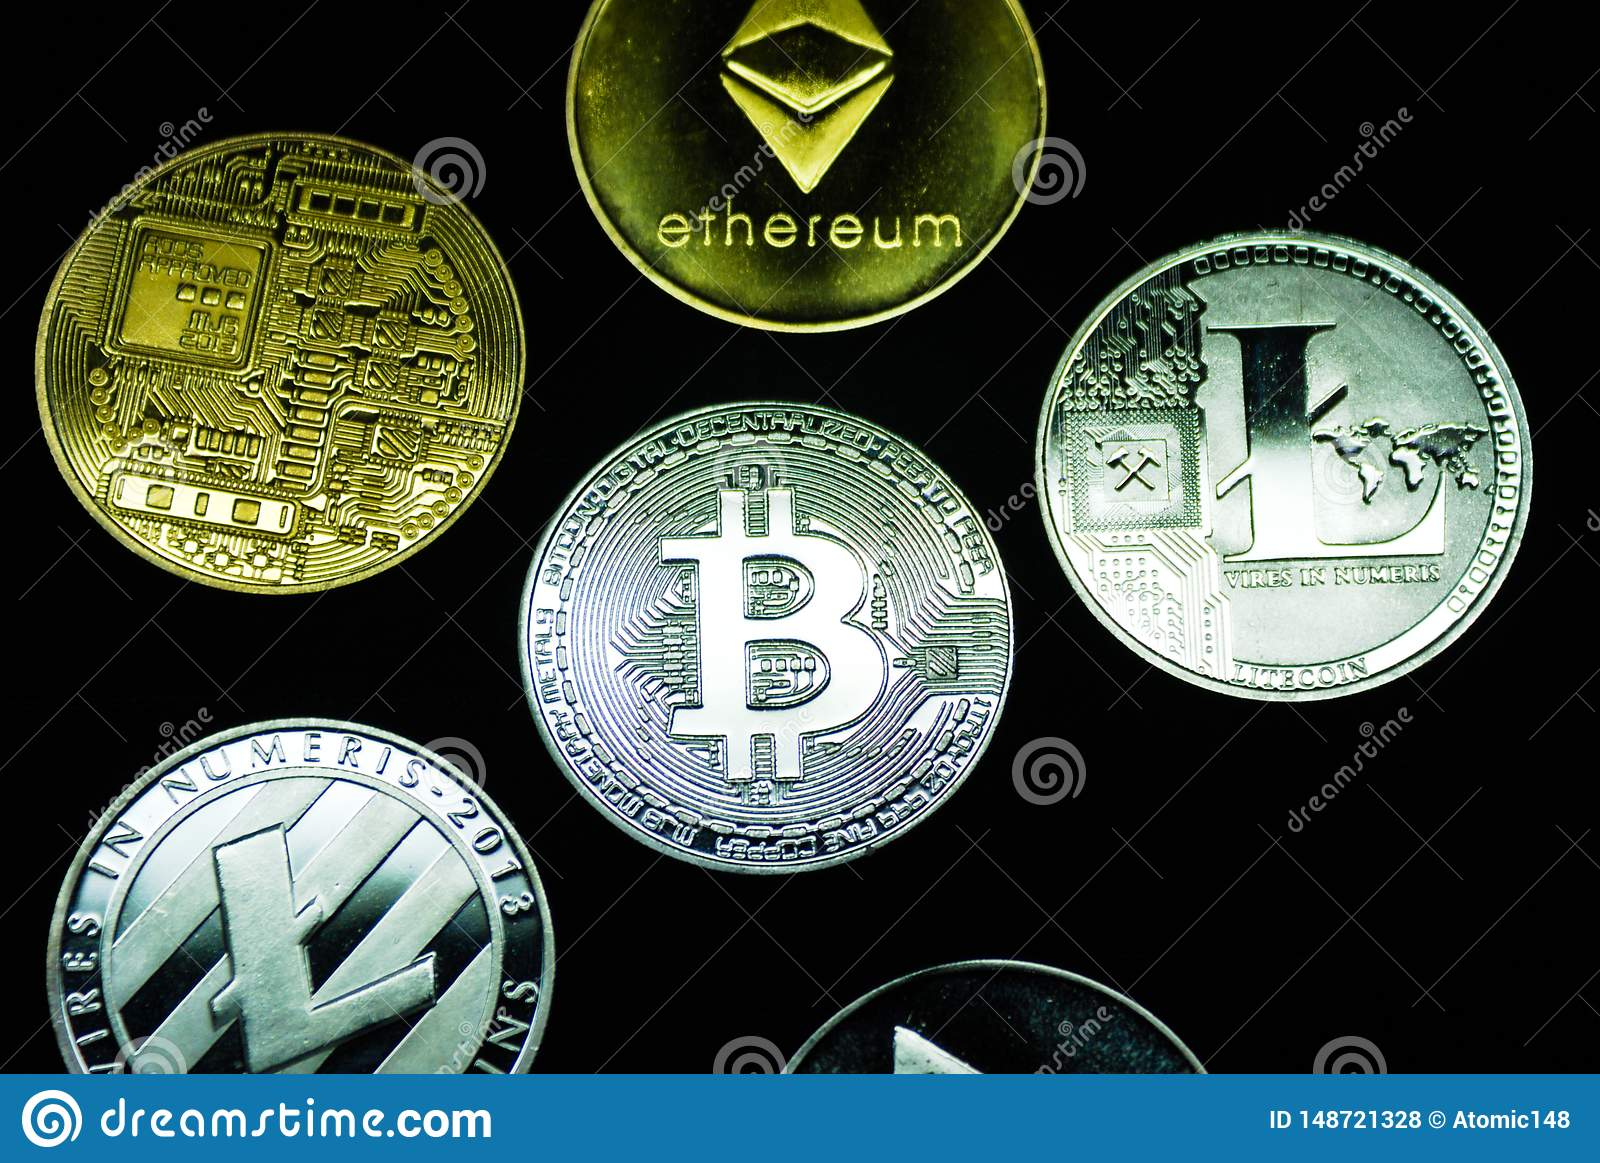 Collection of silver and gold cryptocurrency coins